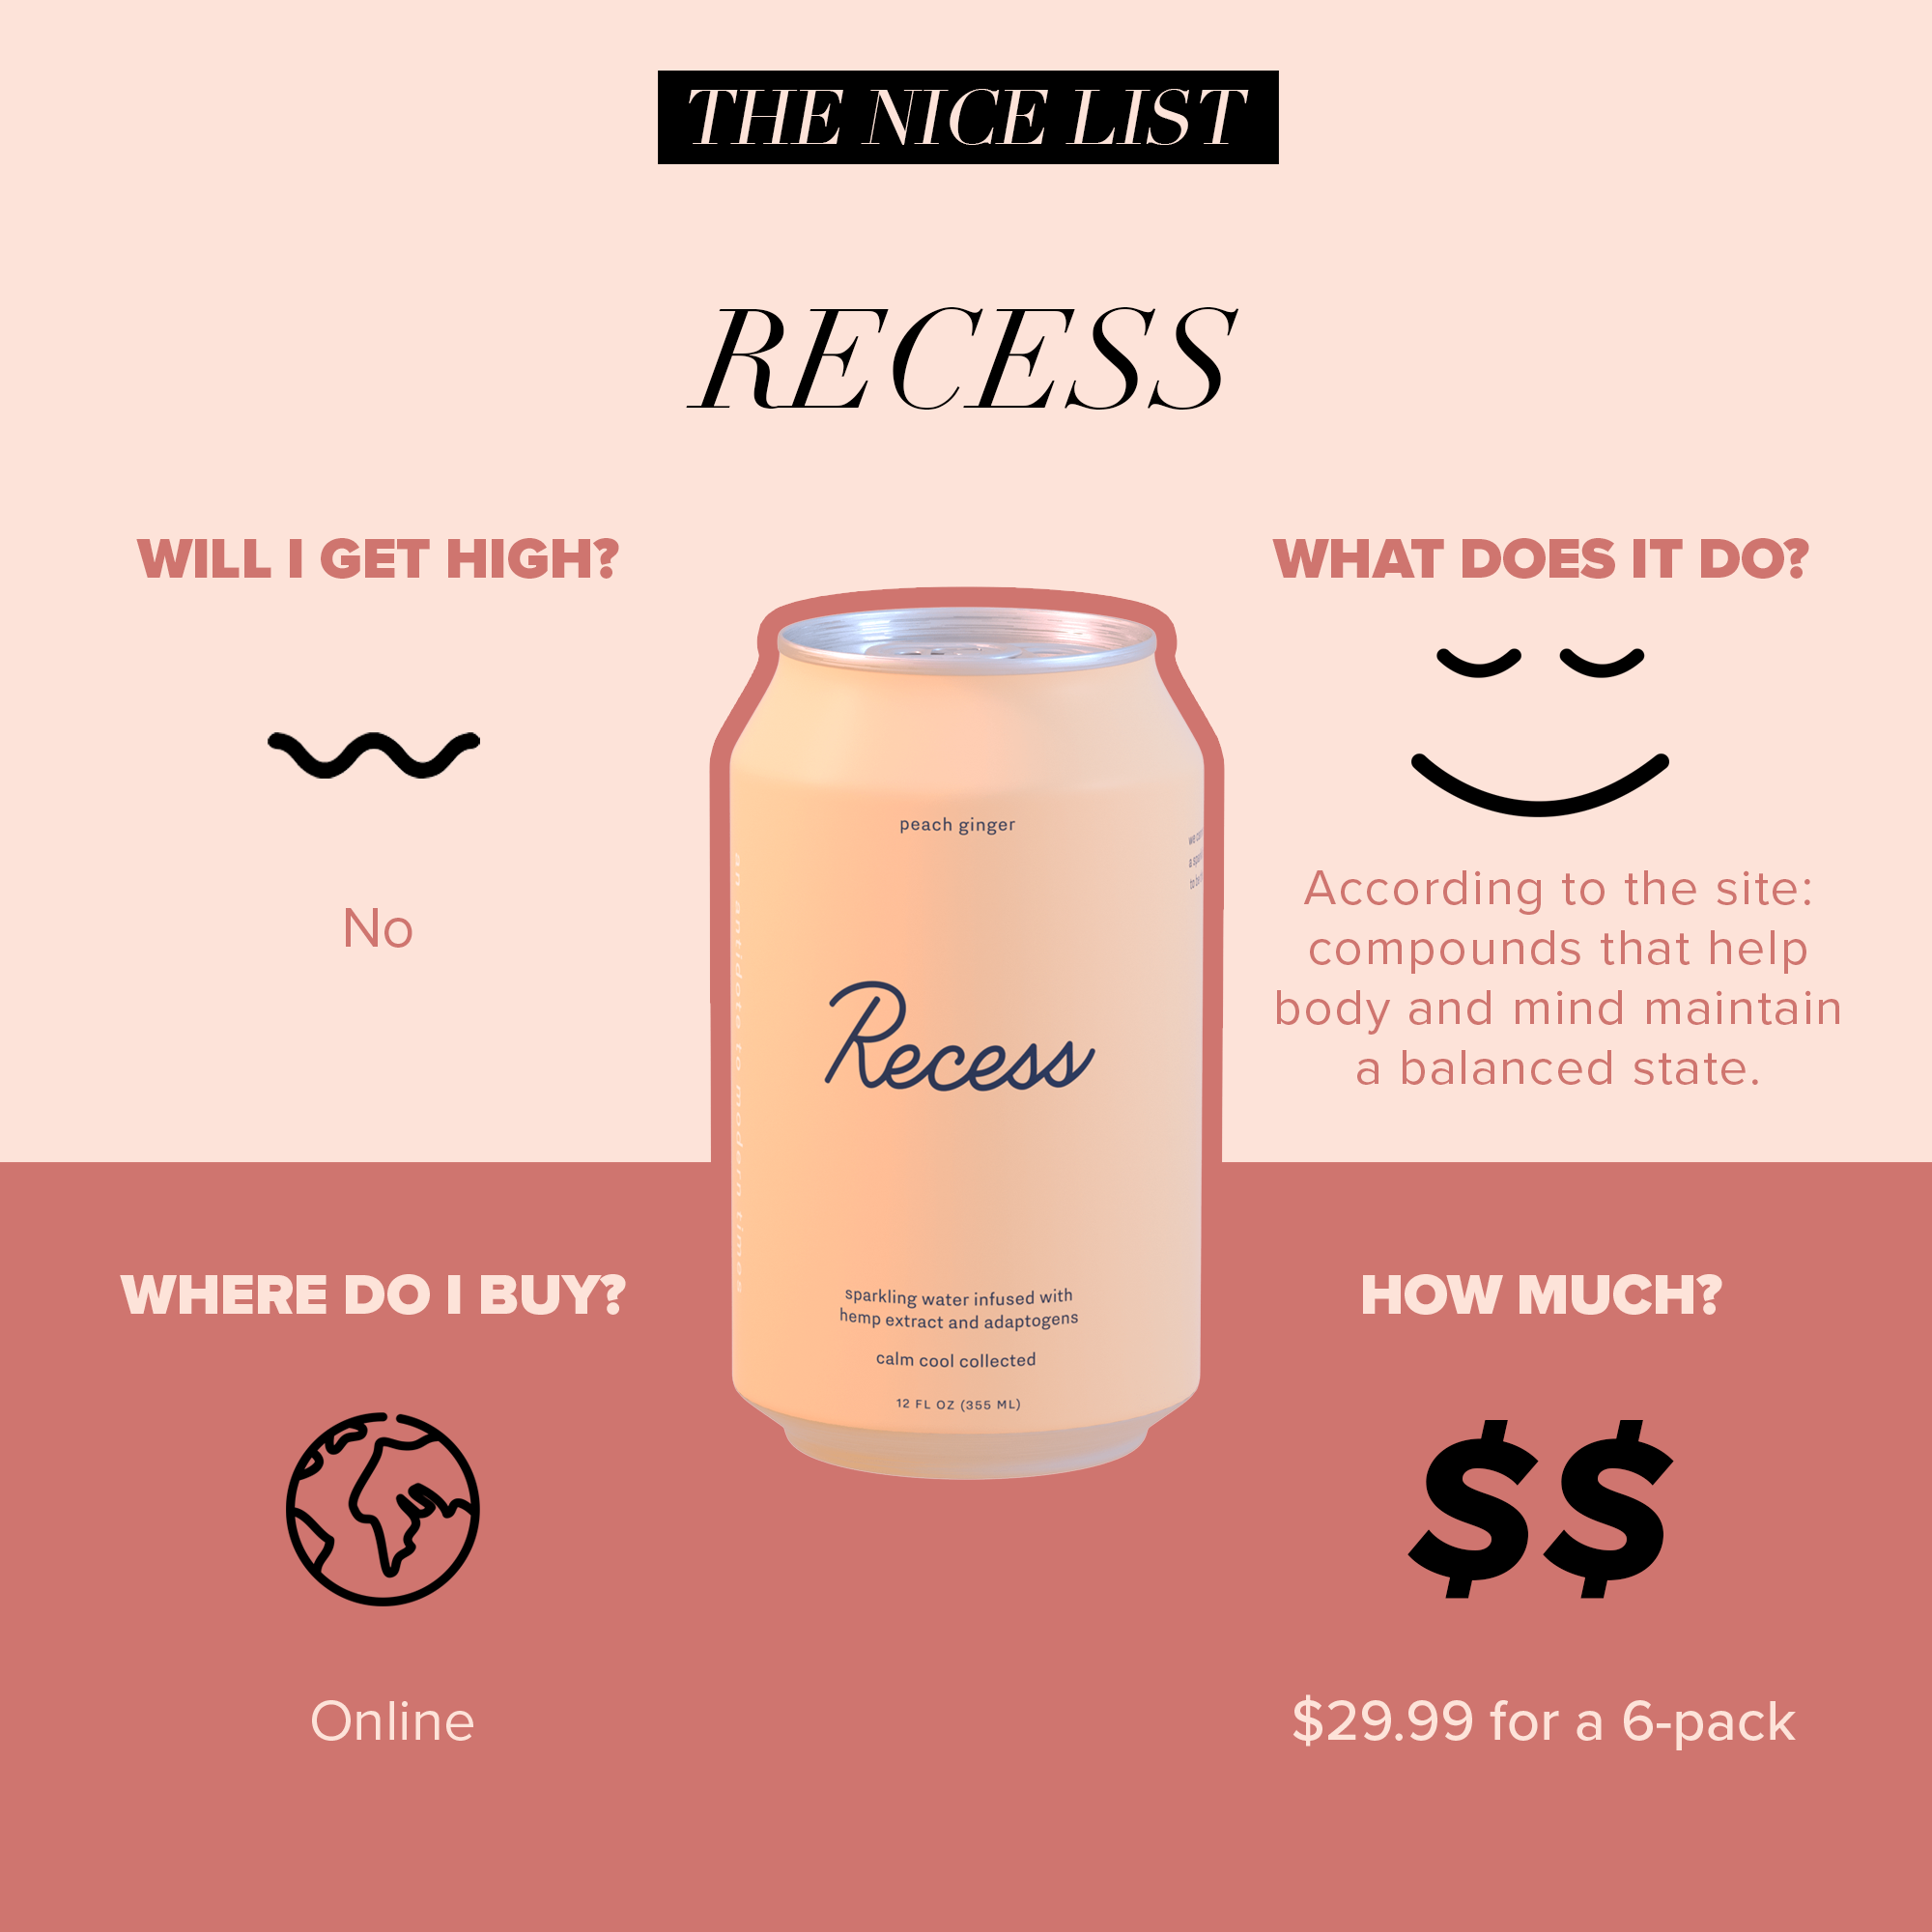 "#4: Recess - Instagram darling @takearecess is more than your dream moodboard, they make delicious drinks that help you take a break that doesn't involve a vat of coffee. Each drink has 10mg of full spectrum hemp oil, 200mg of Ginseng, 130mg of L-theanine, and 200mg of Schisandra with flavors like Peach Ginger, Pom Hibiscus, and Blackberry Chai. After a few sips you'll be thinking ""LaCroix who?"""